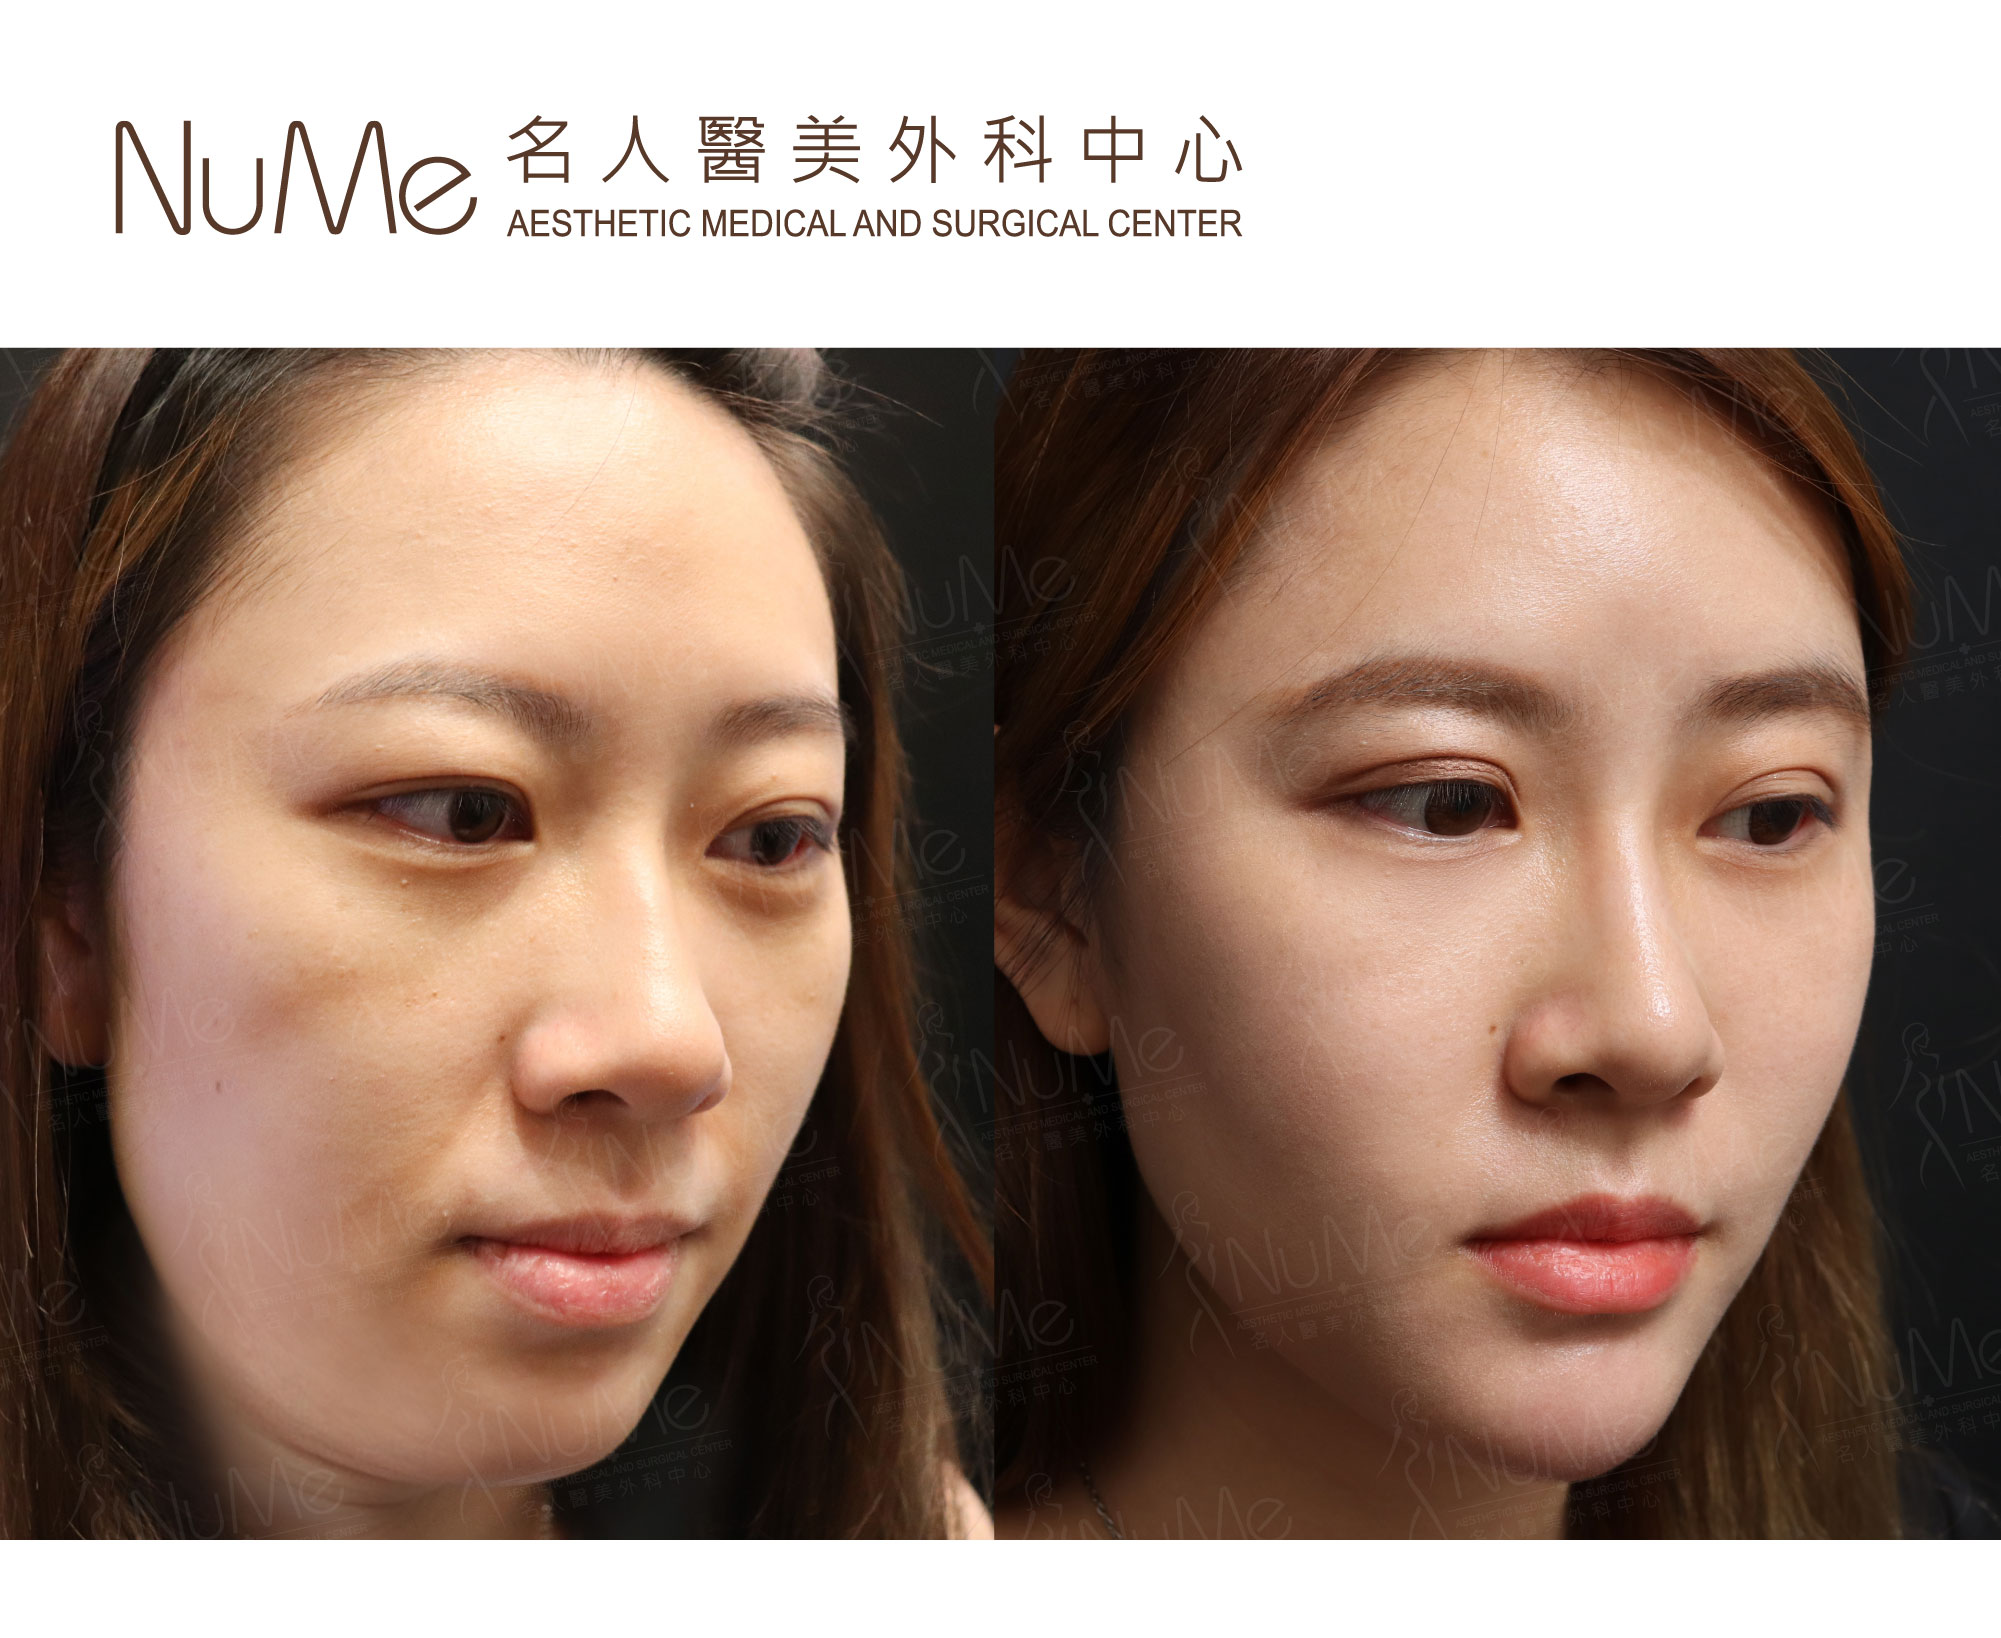 NuMe-Facebook-Before-After-Photos-Comments-Double-Chin-02.jpg